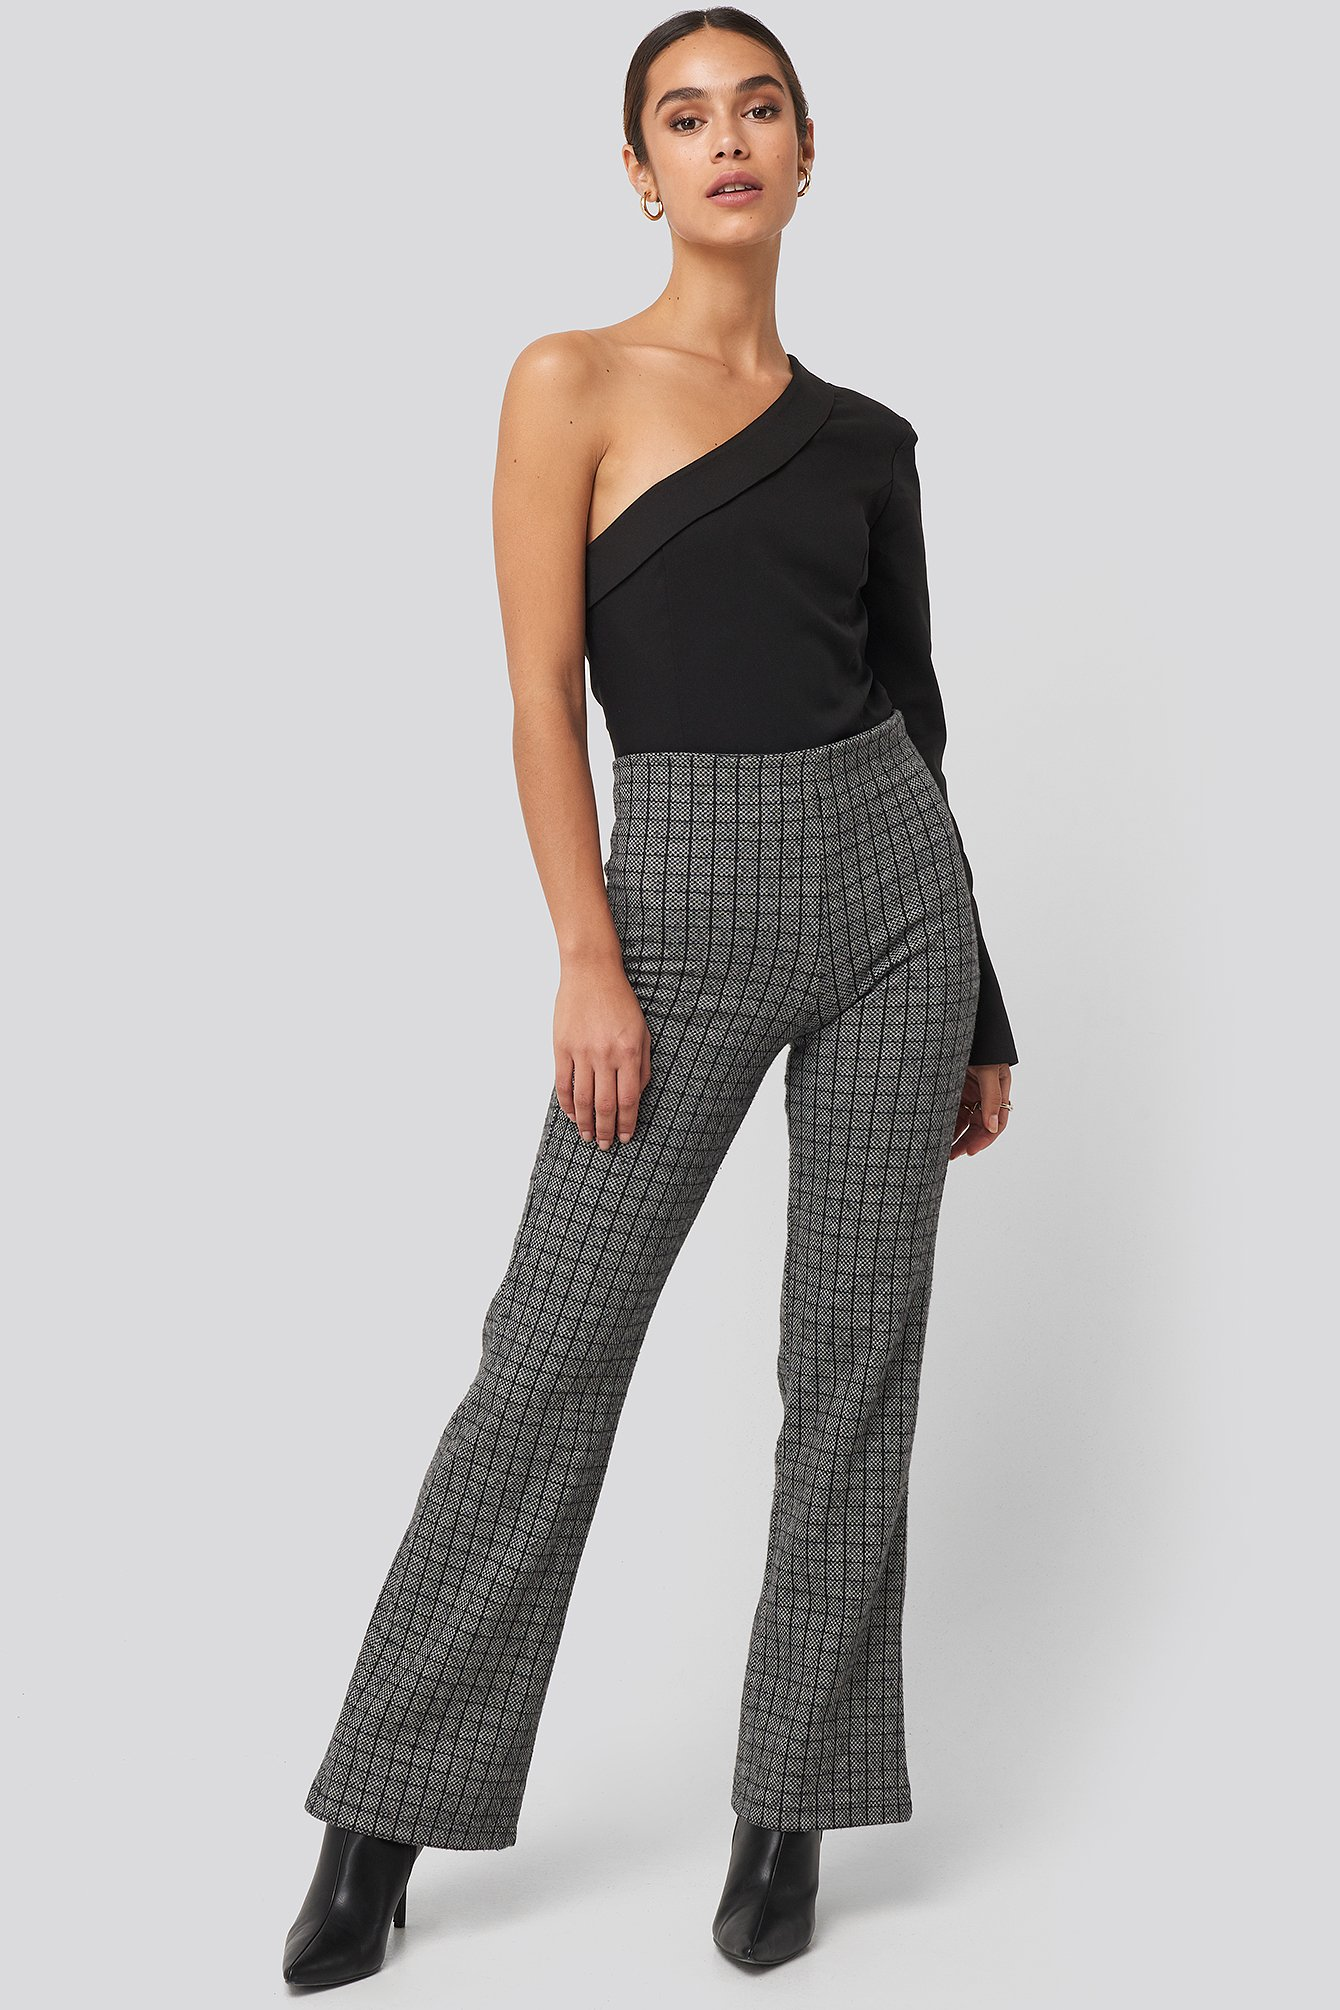 trendyol -  Black Plaid Knitted Trousers - Grey